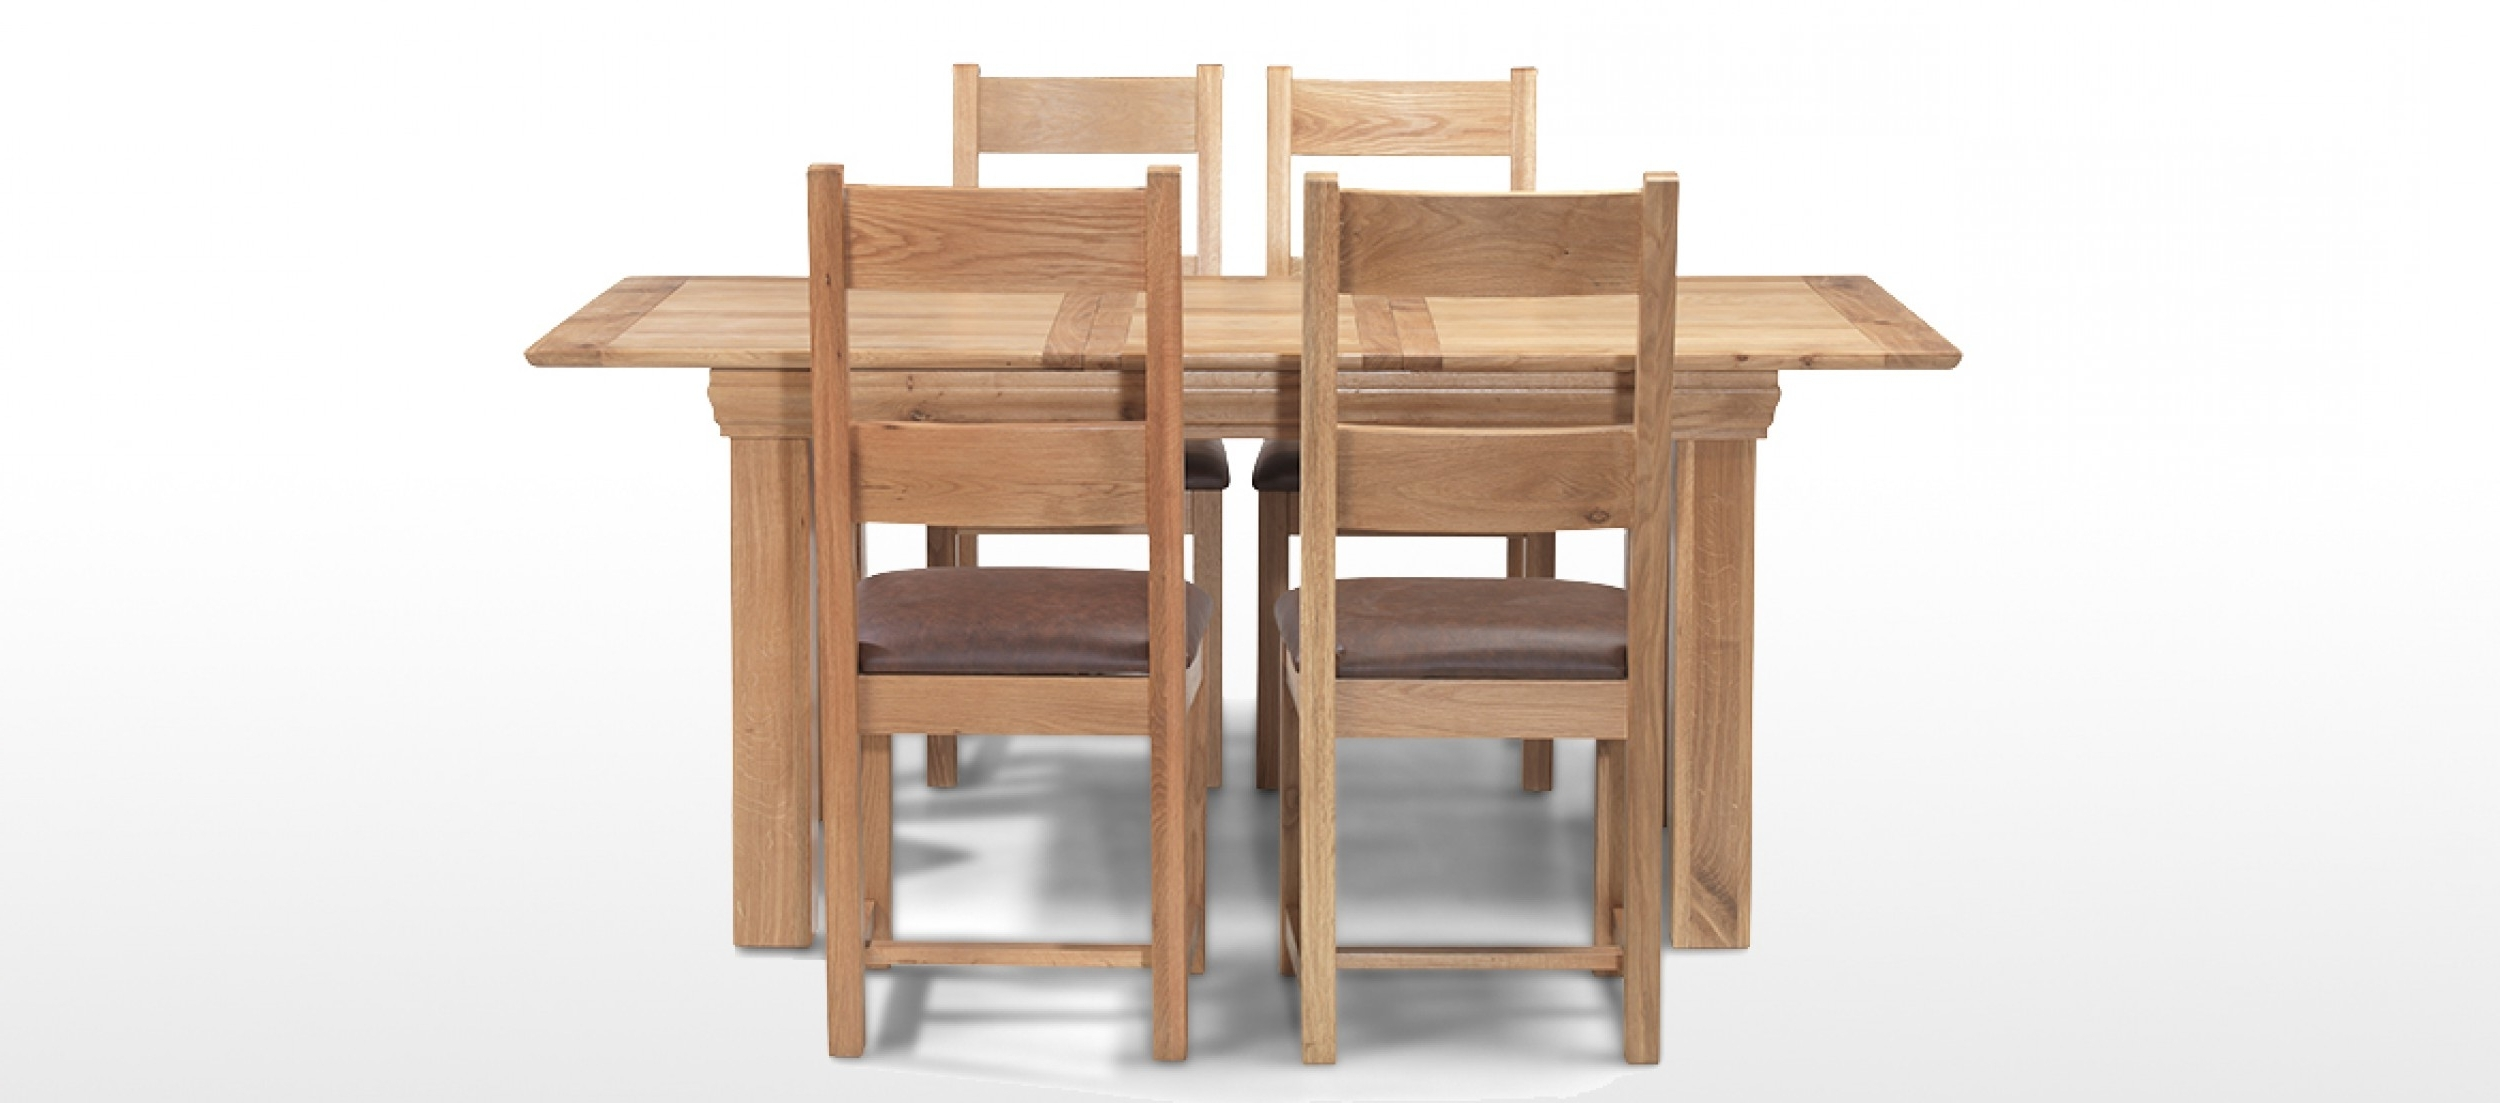 Oak Extending Dining Tables And 4 Chairs For 2018 Constance Oak 140 180 Cm Extending Dining Table And 4 Chairs (View 14 of 25)